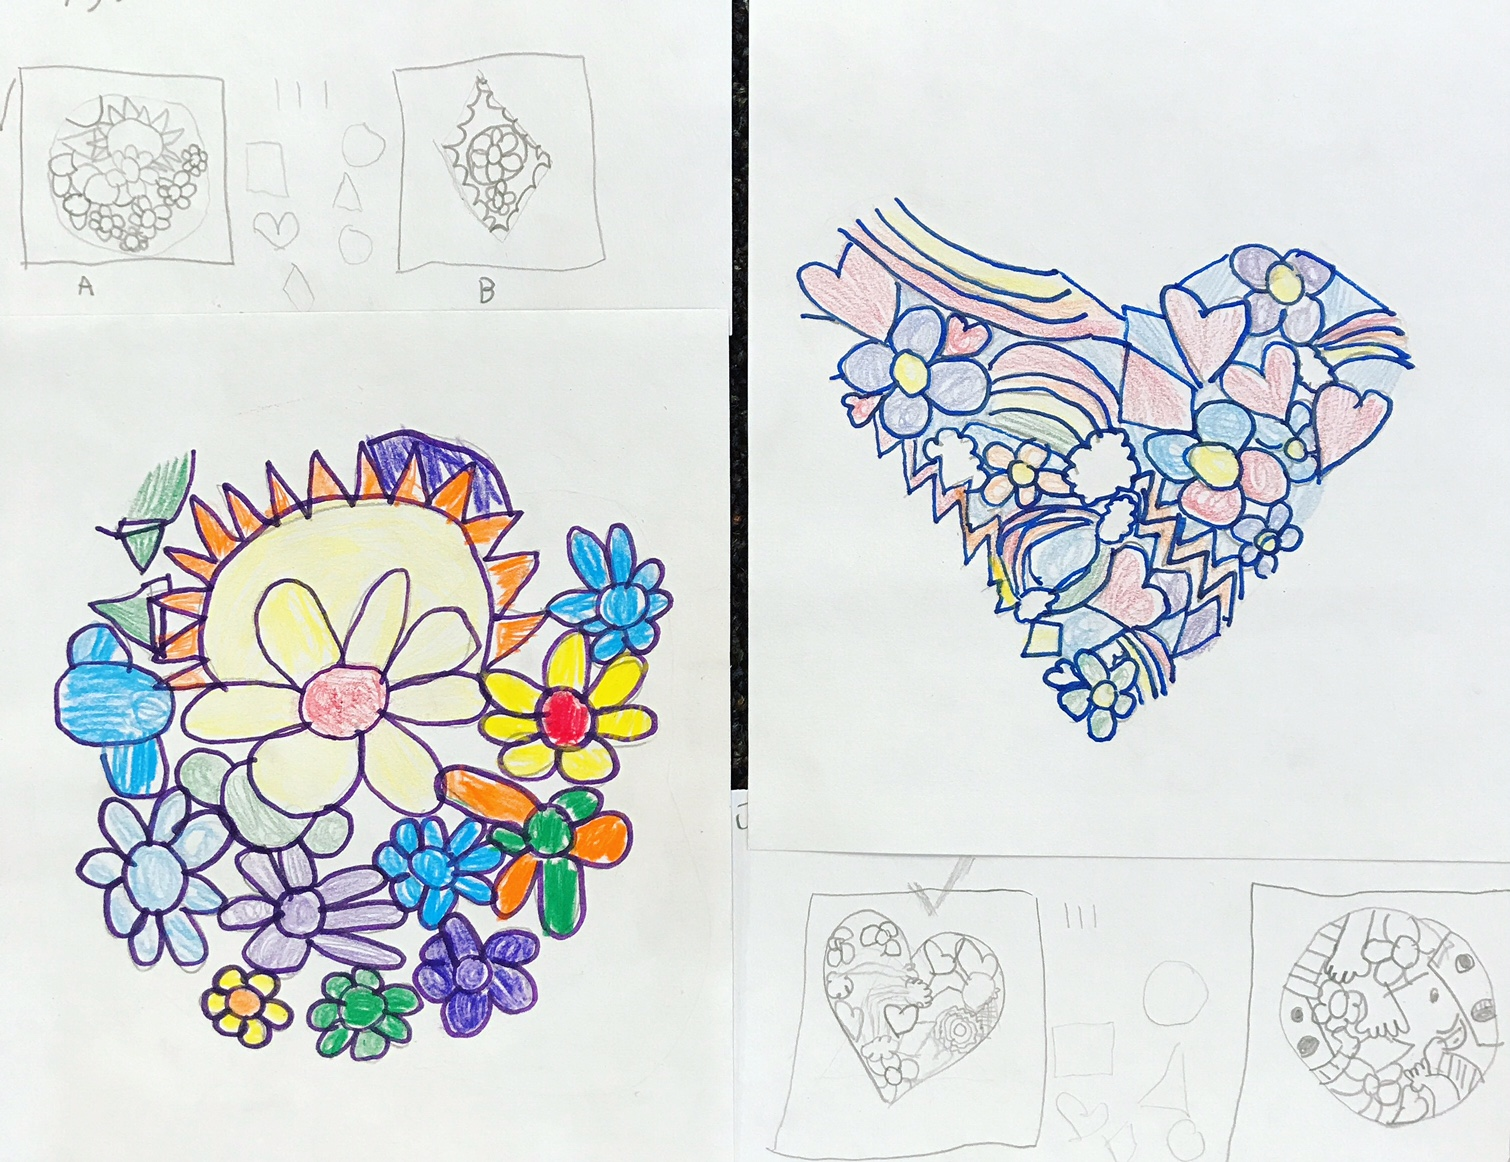 When Adding Color To The Final Drawings Students Could Use Any Colors They Wanted And I Reminded Them That Press Hard Soft Make Dark